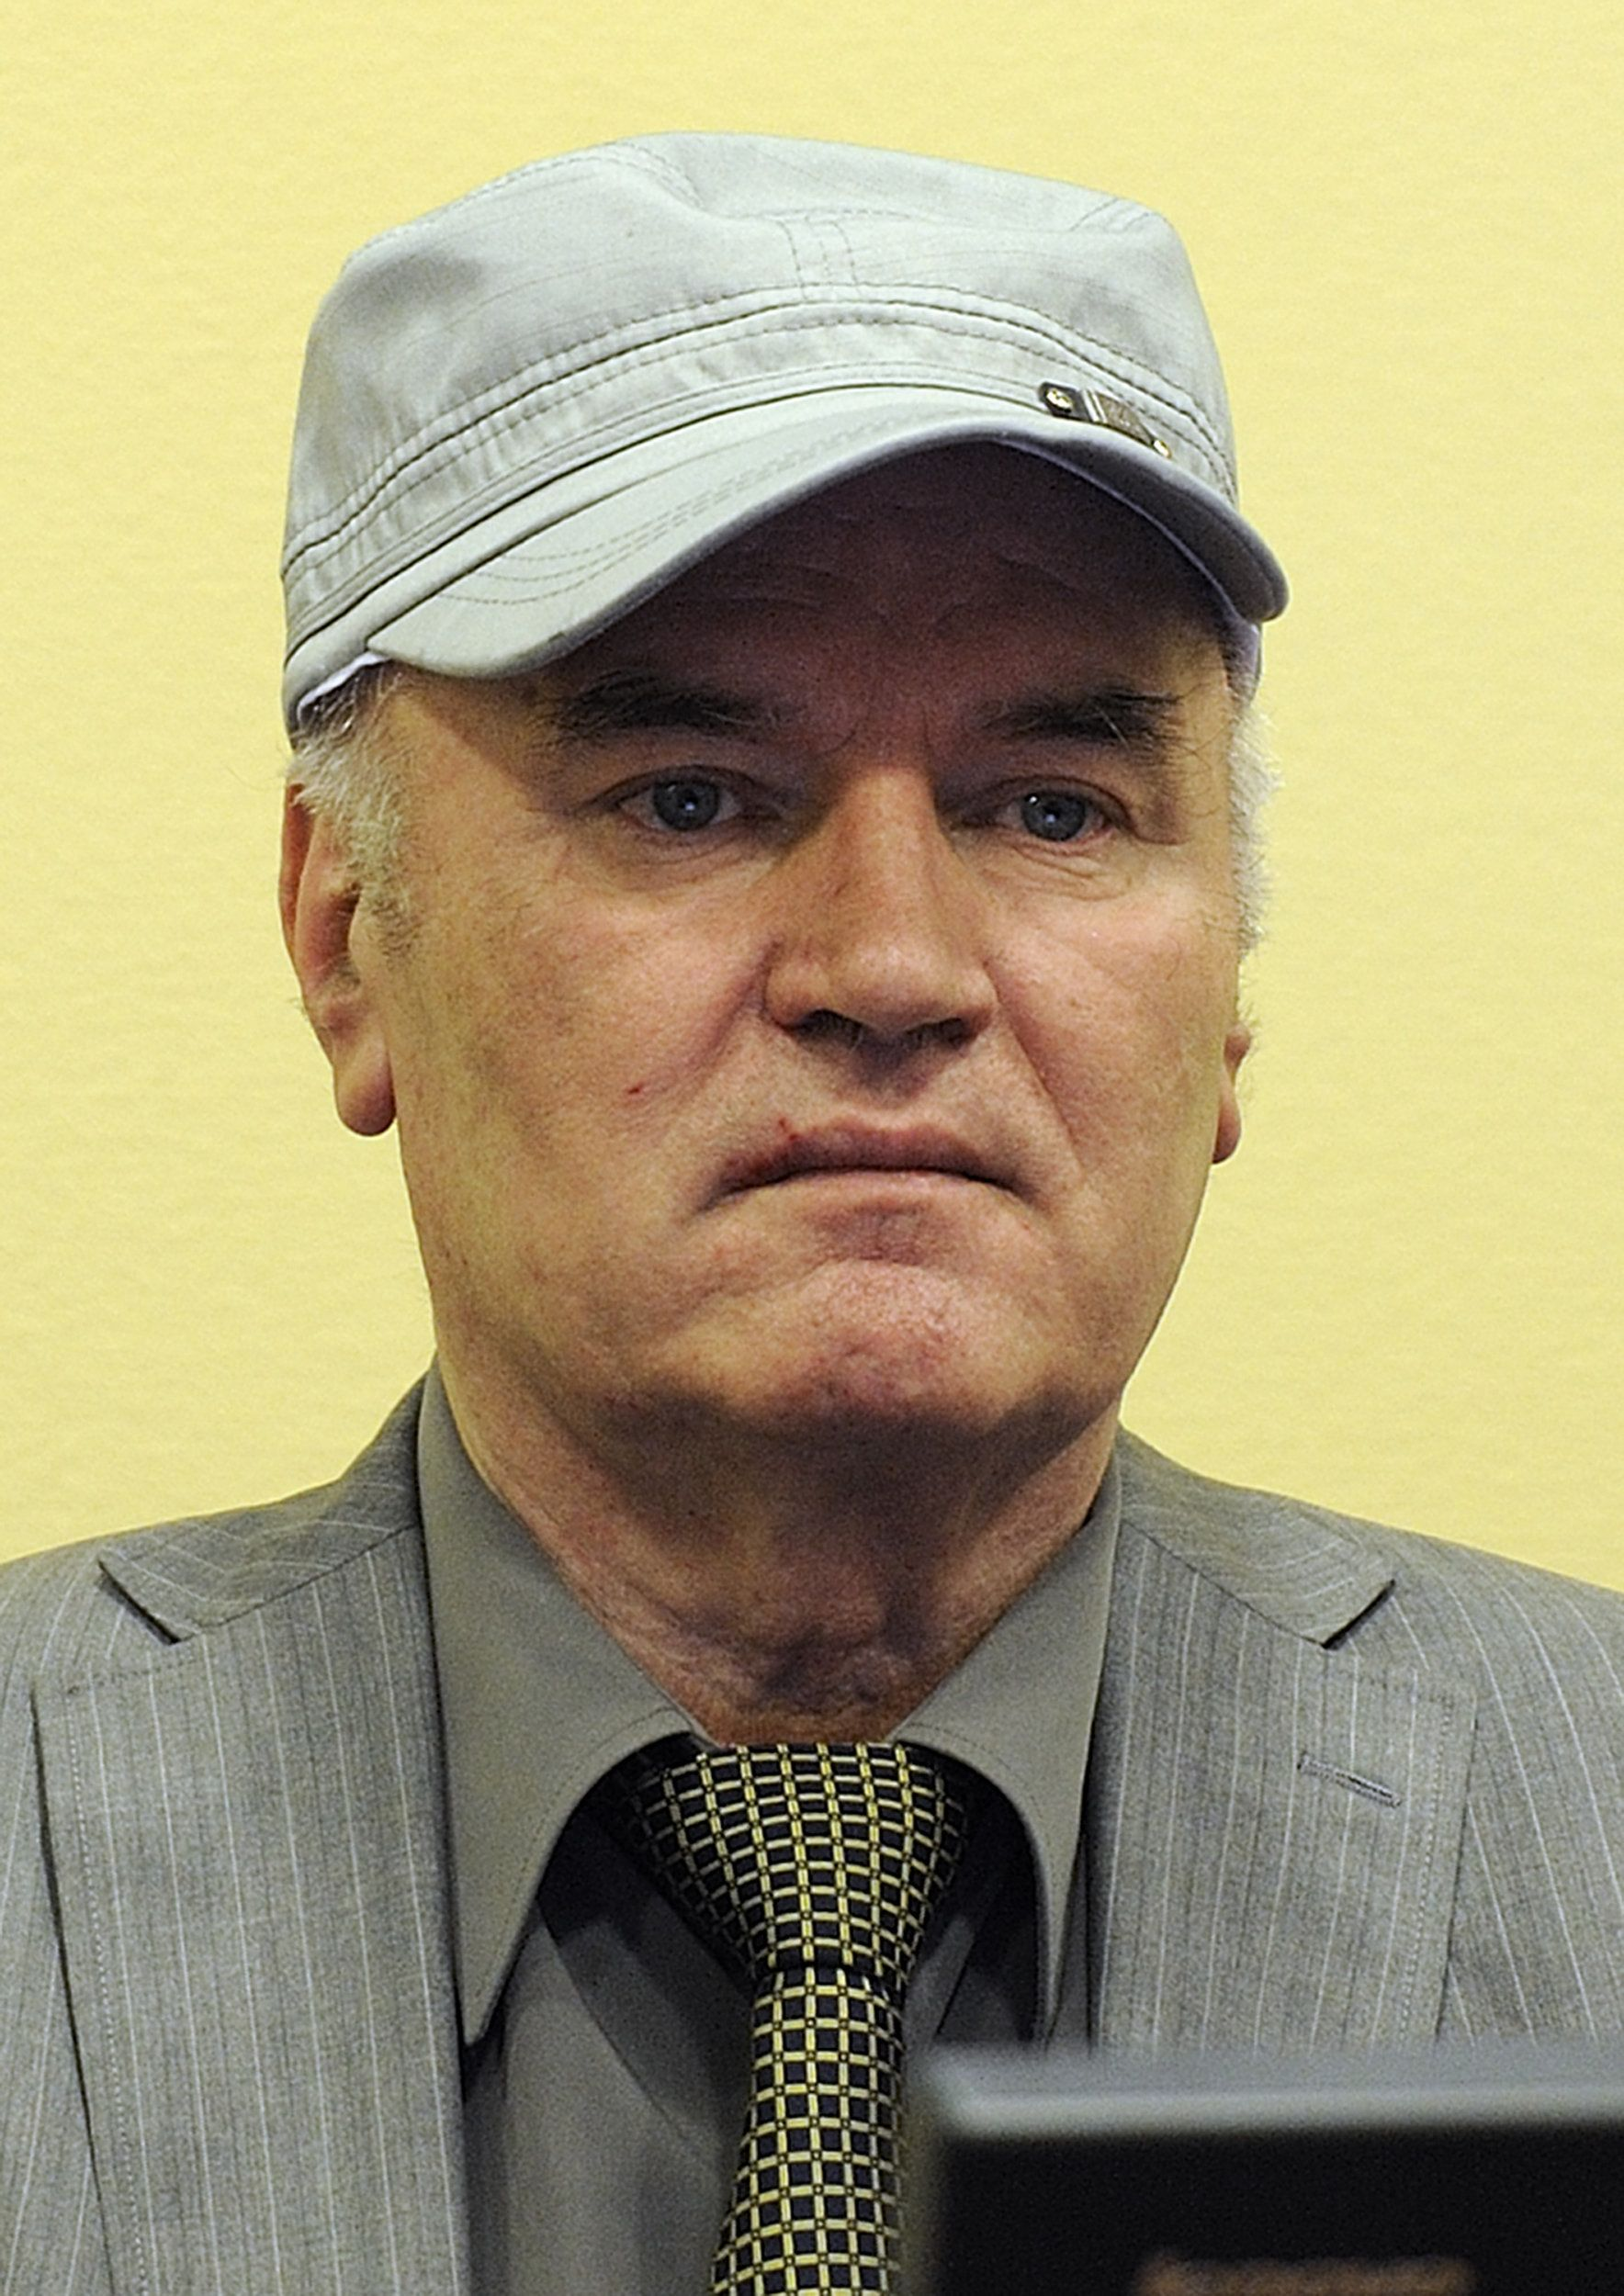 (FILES) Wartime Bosnian Serb General Ratko Mladic sits in the court room during his initial appearance at the UN Yugoslav war crimes tribunal in The Hague on June 3, 2011. Bosnian Serb ex-army chief Ratko Mladic, who faces charges of genocide, crimes against humanity and war crimes, will go on trial on May 14, the Yugoslav war crimes tribunal said on February 15, 2012.  AFP PHOTO / Martin Meissner (Photo credit should read MARTIN MEISSNER/AFP/Getty Images)